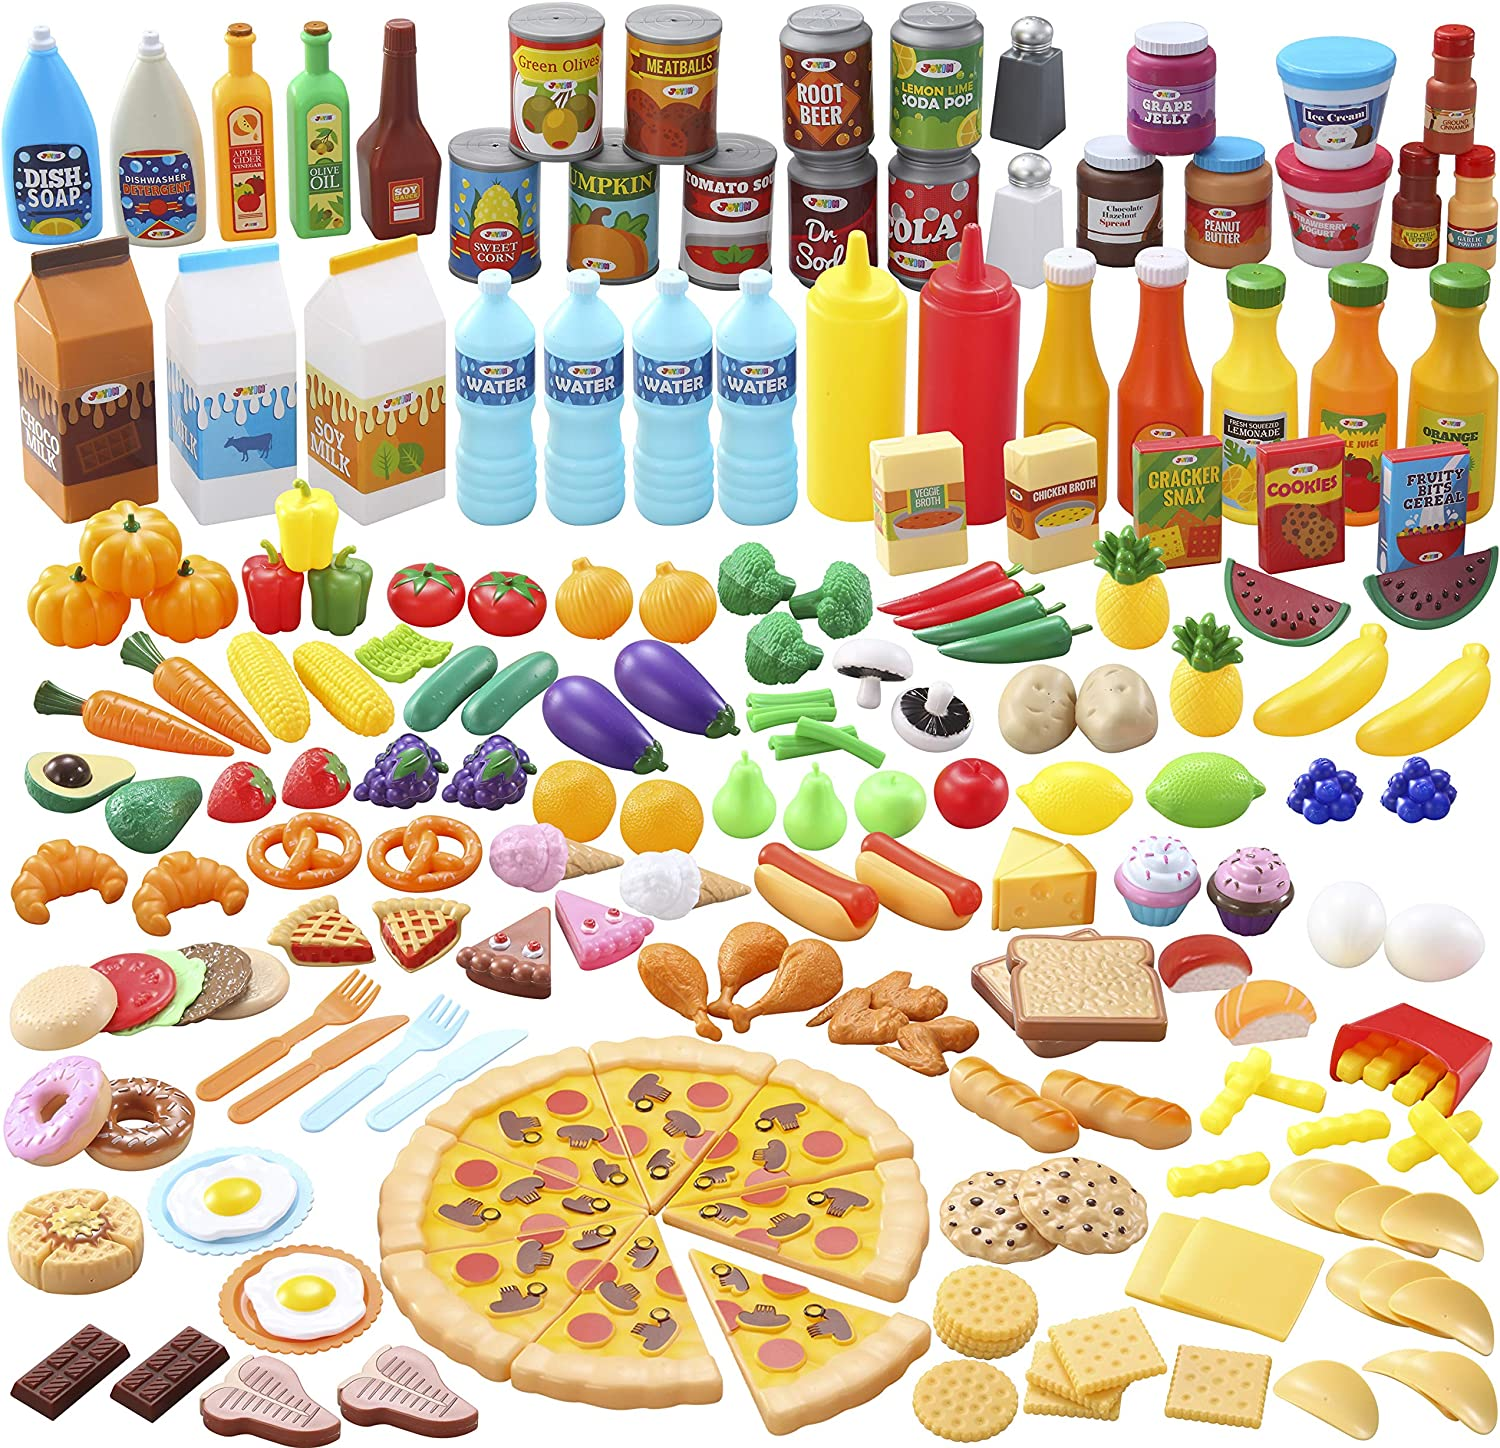 JOYIN Kids Play Food Deluxe Pretend Play Food Set 200 Pieces Toy Food Play Kitchen Accessories with Realistic Colors